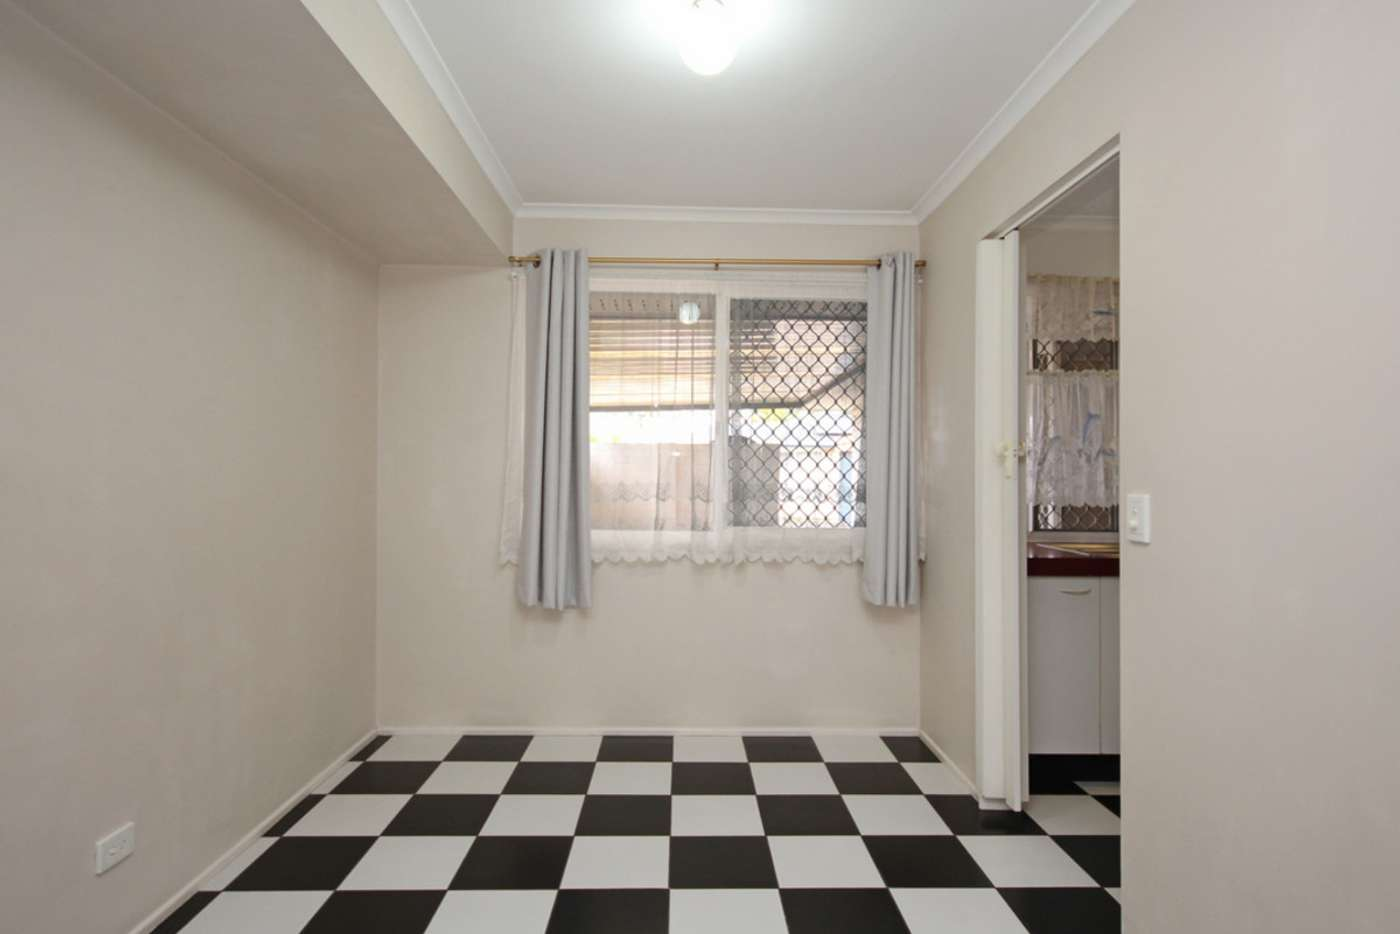 Sixth view of Homely house listing, 74 Collins Street, Brassall QLD 4305